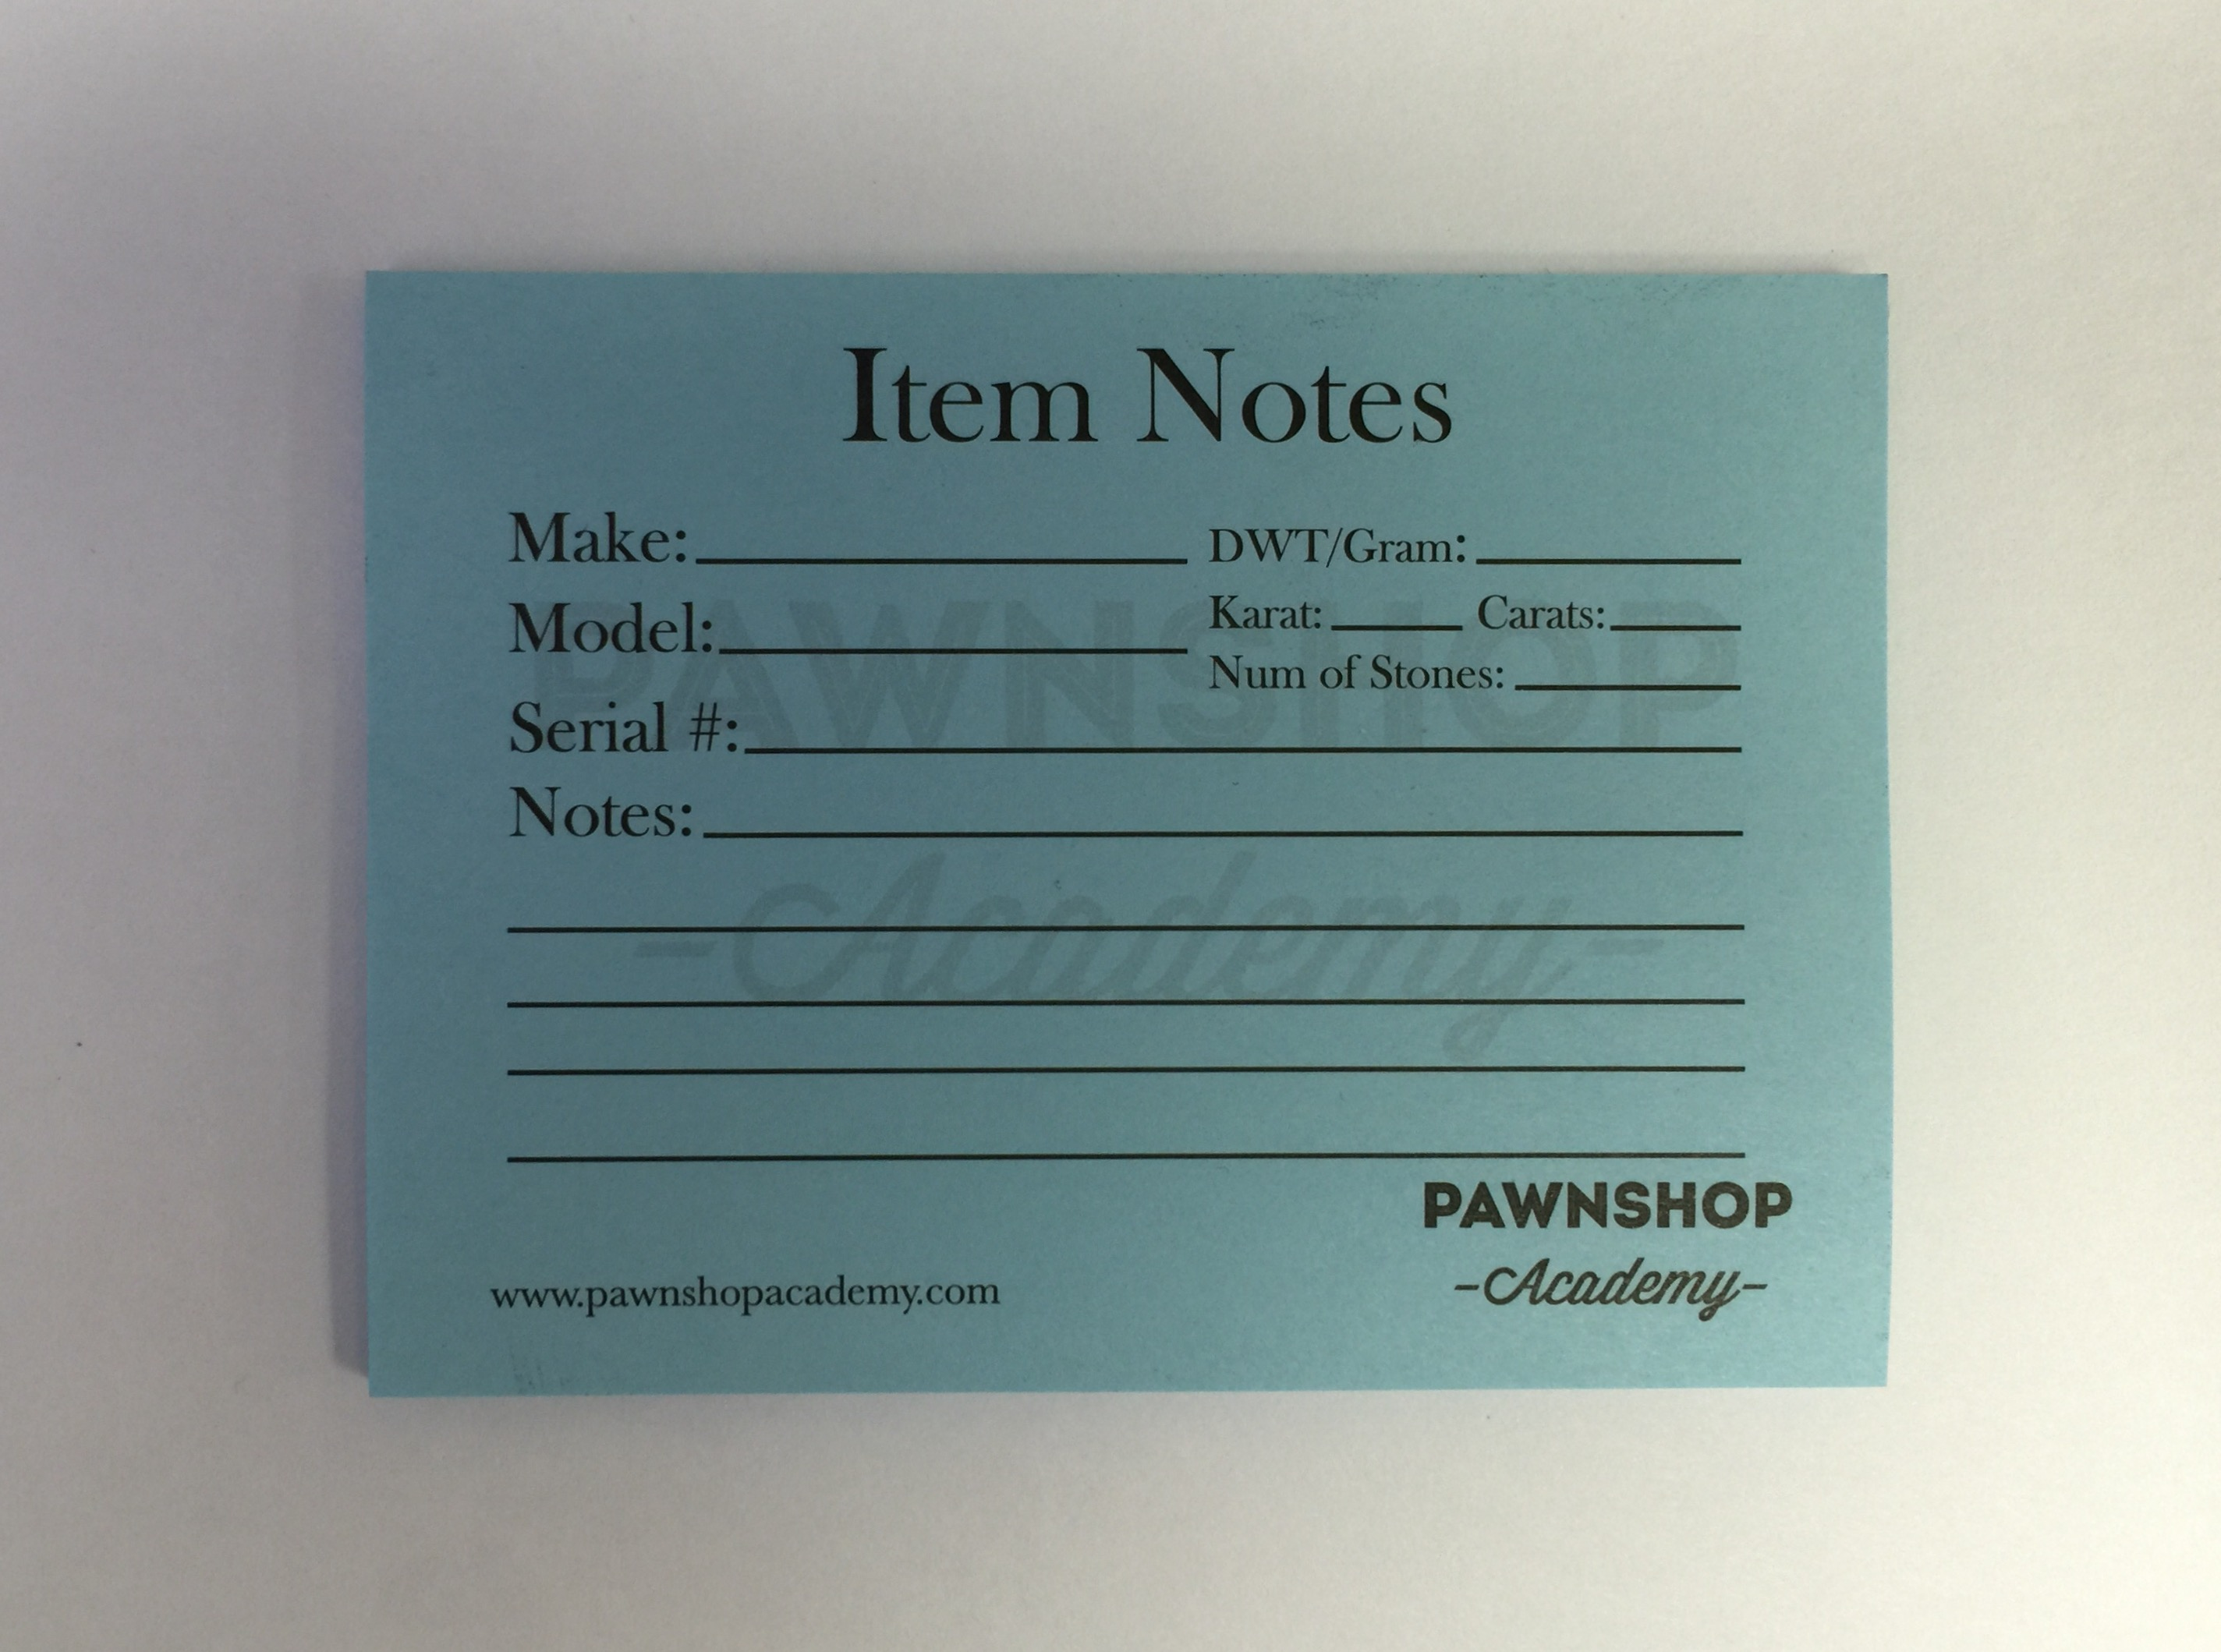 Pawnshop Academy Notepads (Pack of 10)